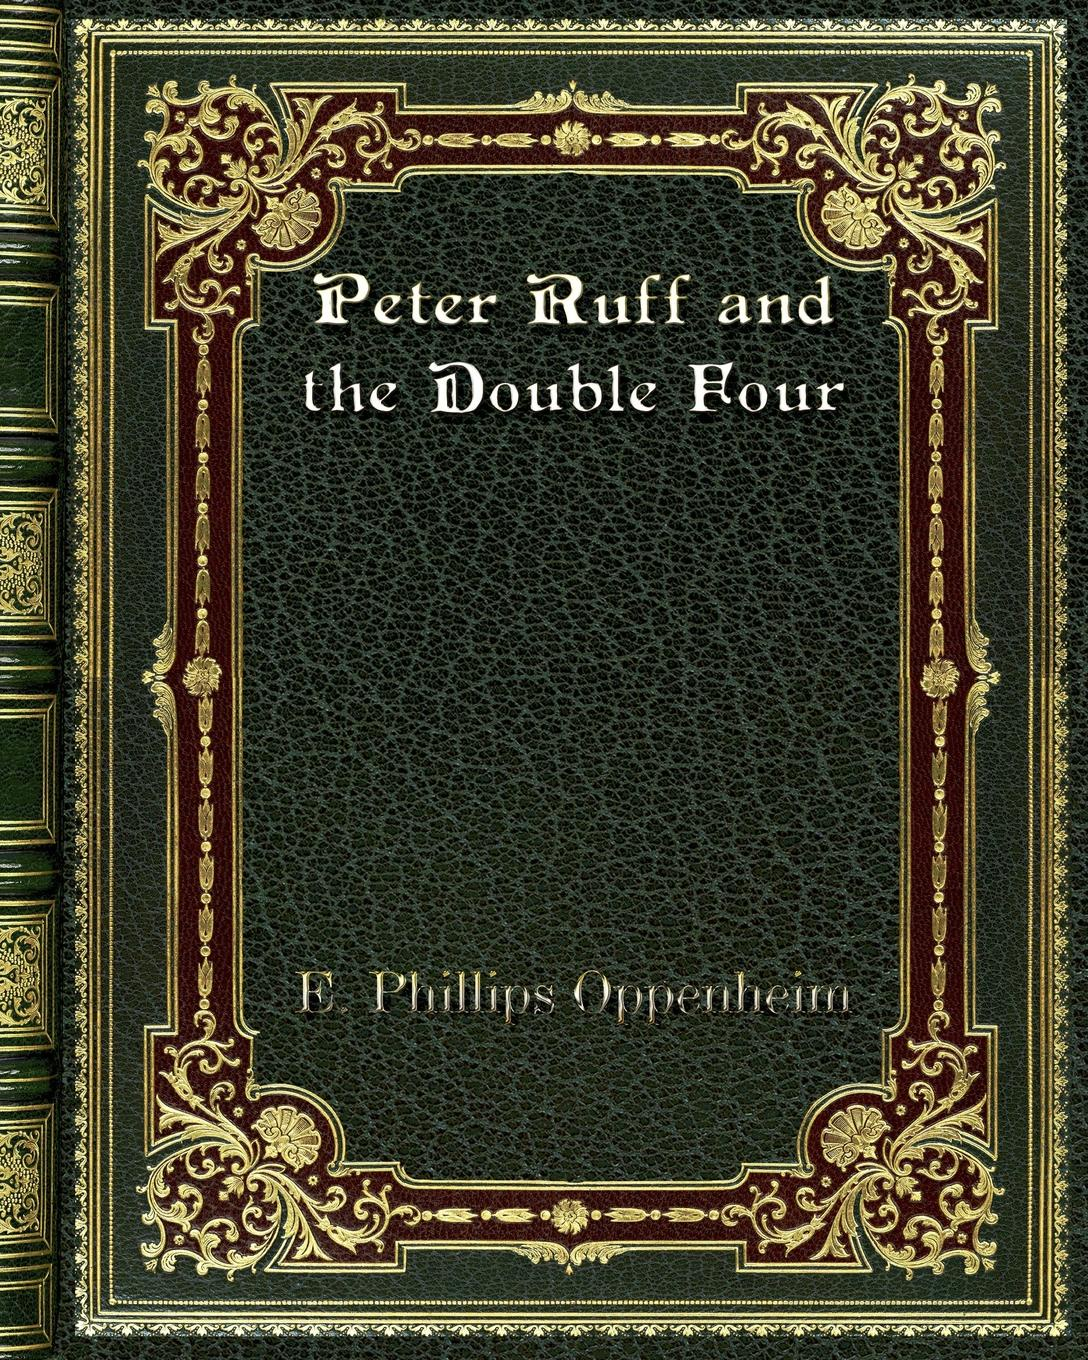 E. Phillips Oppenheim Peter Ruff and the Double Four e phillips oppenheim the betrayal